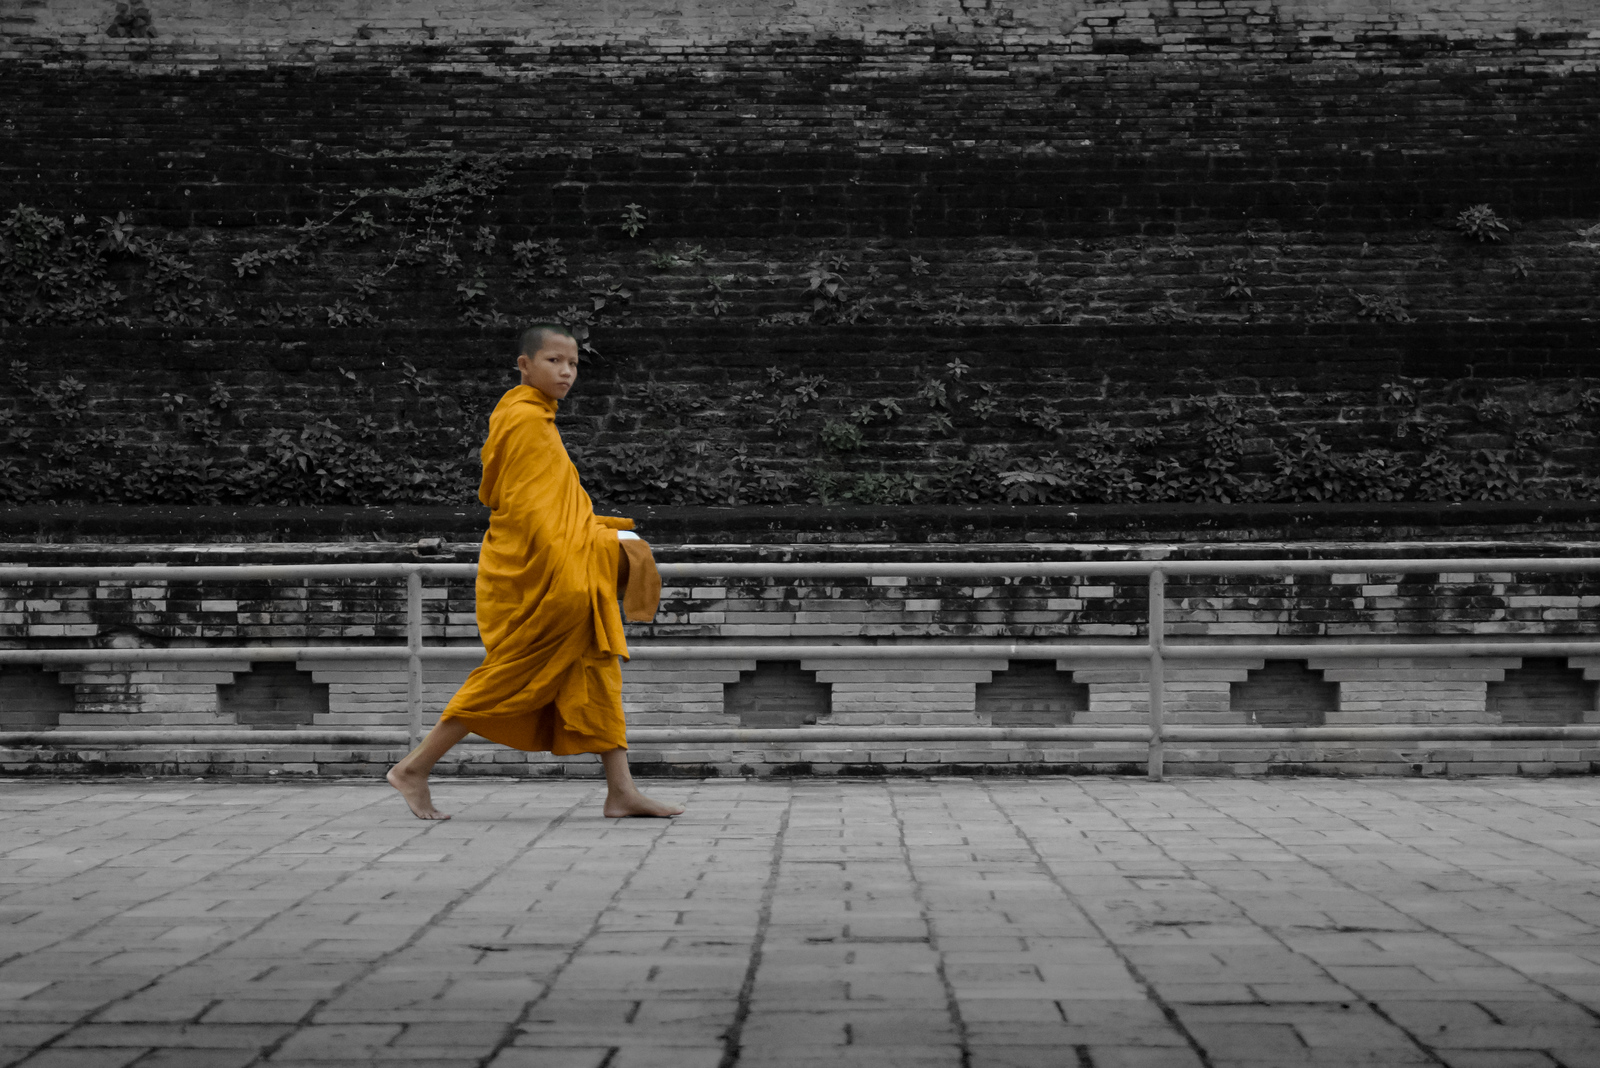 Monk at Wat Chedi Luang